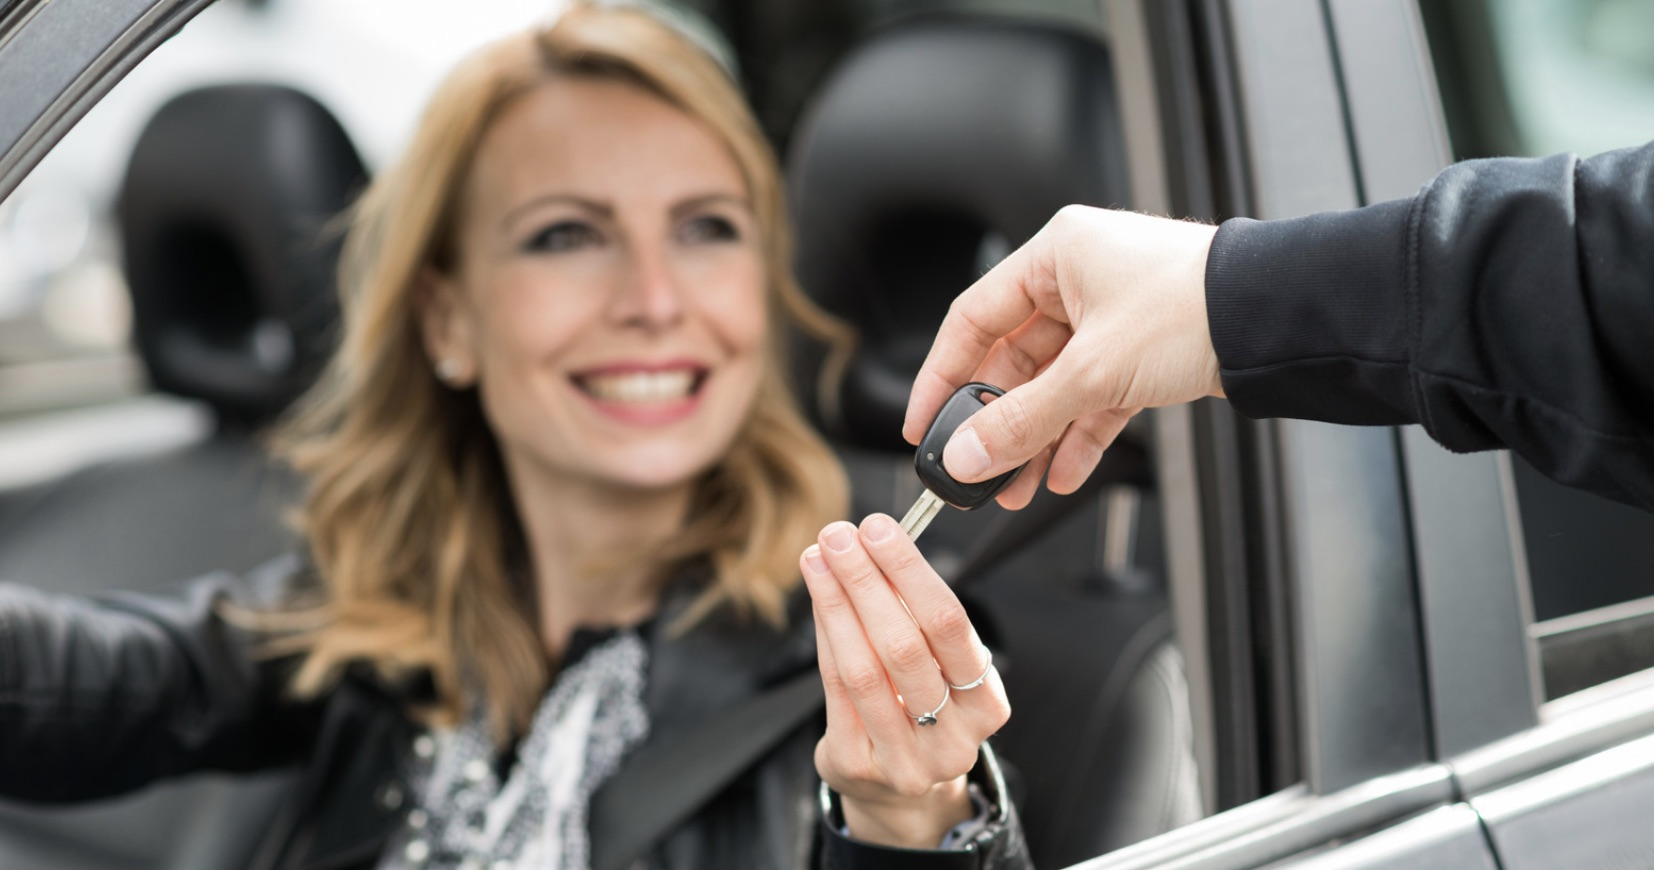 Middle aged woman being handing the keys to a new car she financed in Neptune, NJ.